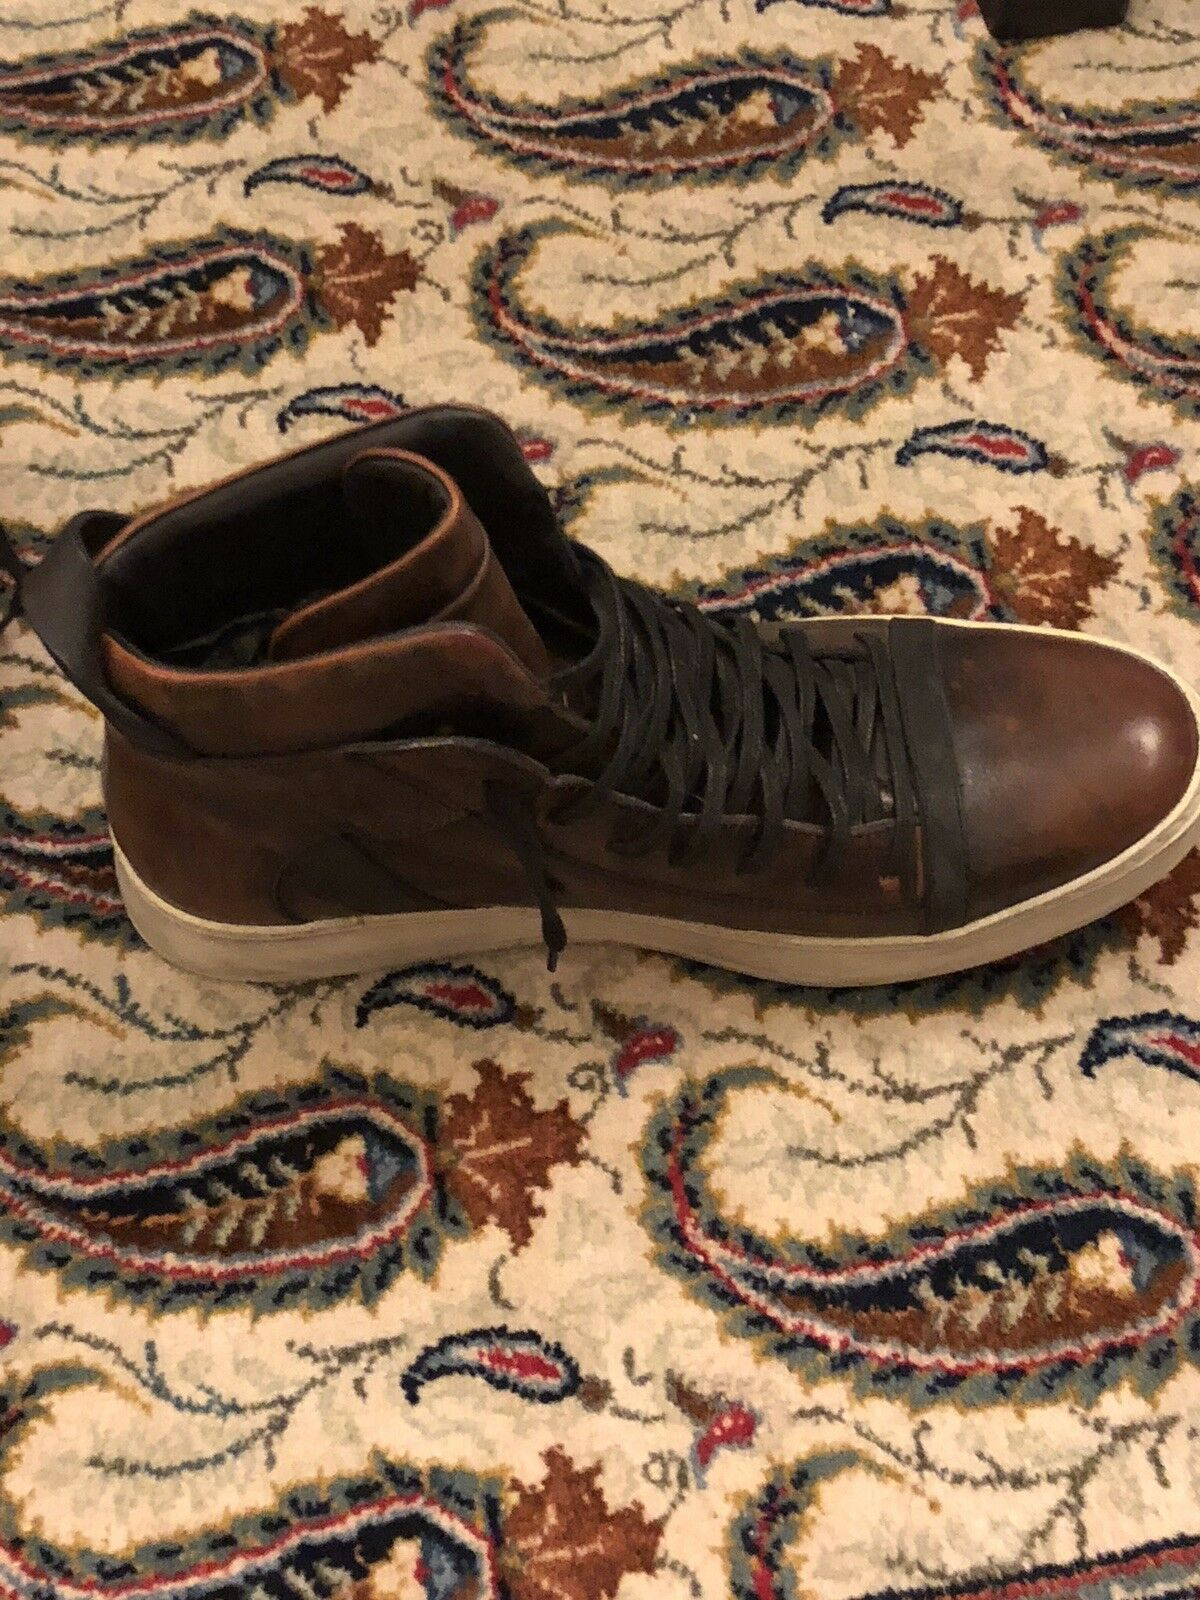 Scarpe casual da uomo  John Varvatos 315 Brown Leather High-Tops, Size 9.5M, Pre-Owned